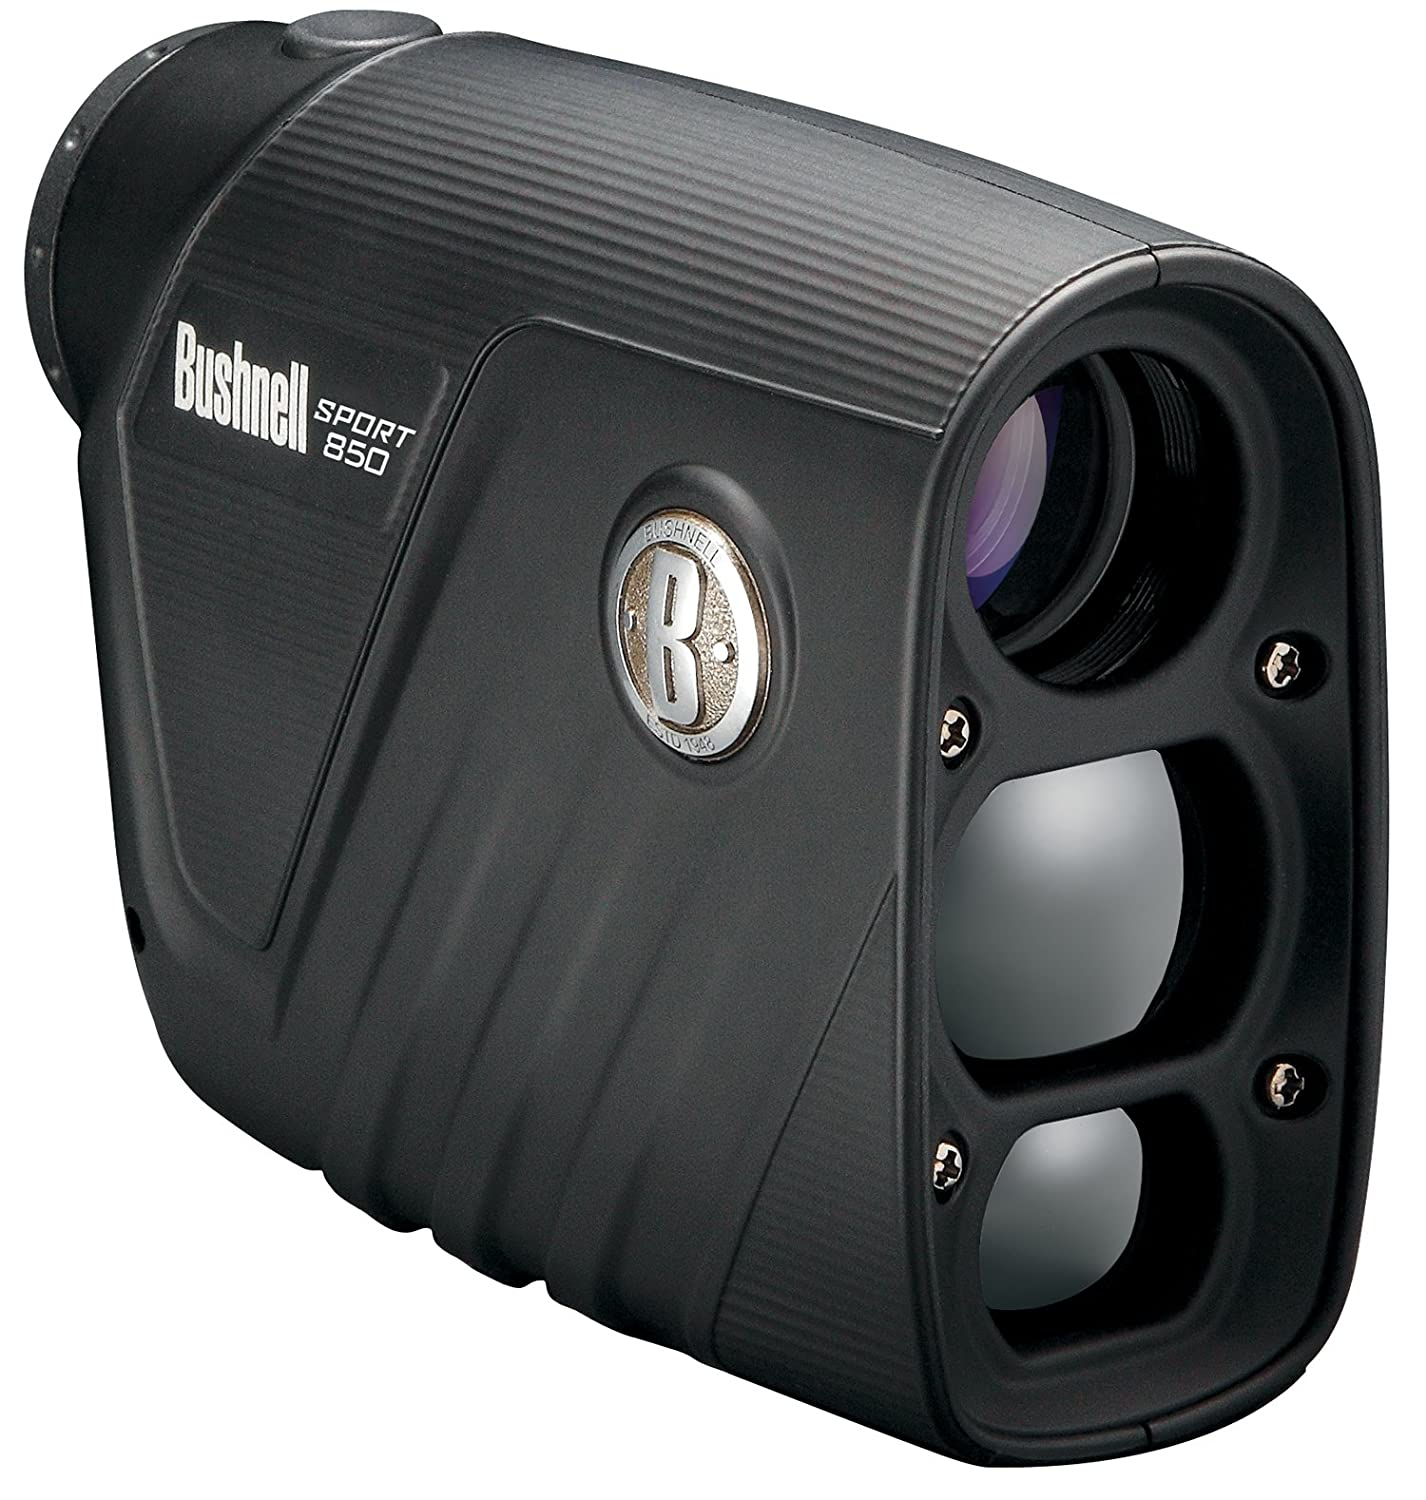 read-my-review-of-bushnell-sport-850-rangefinder-1